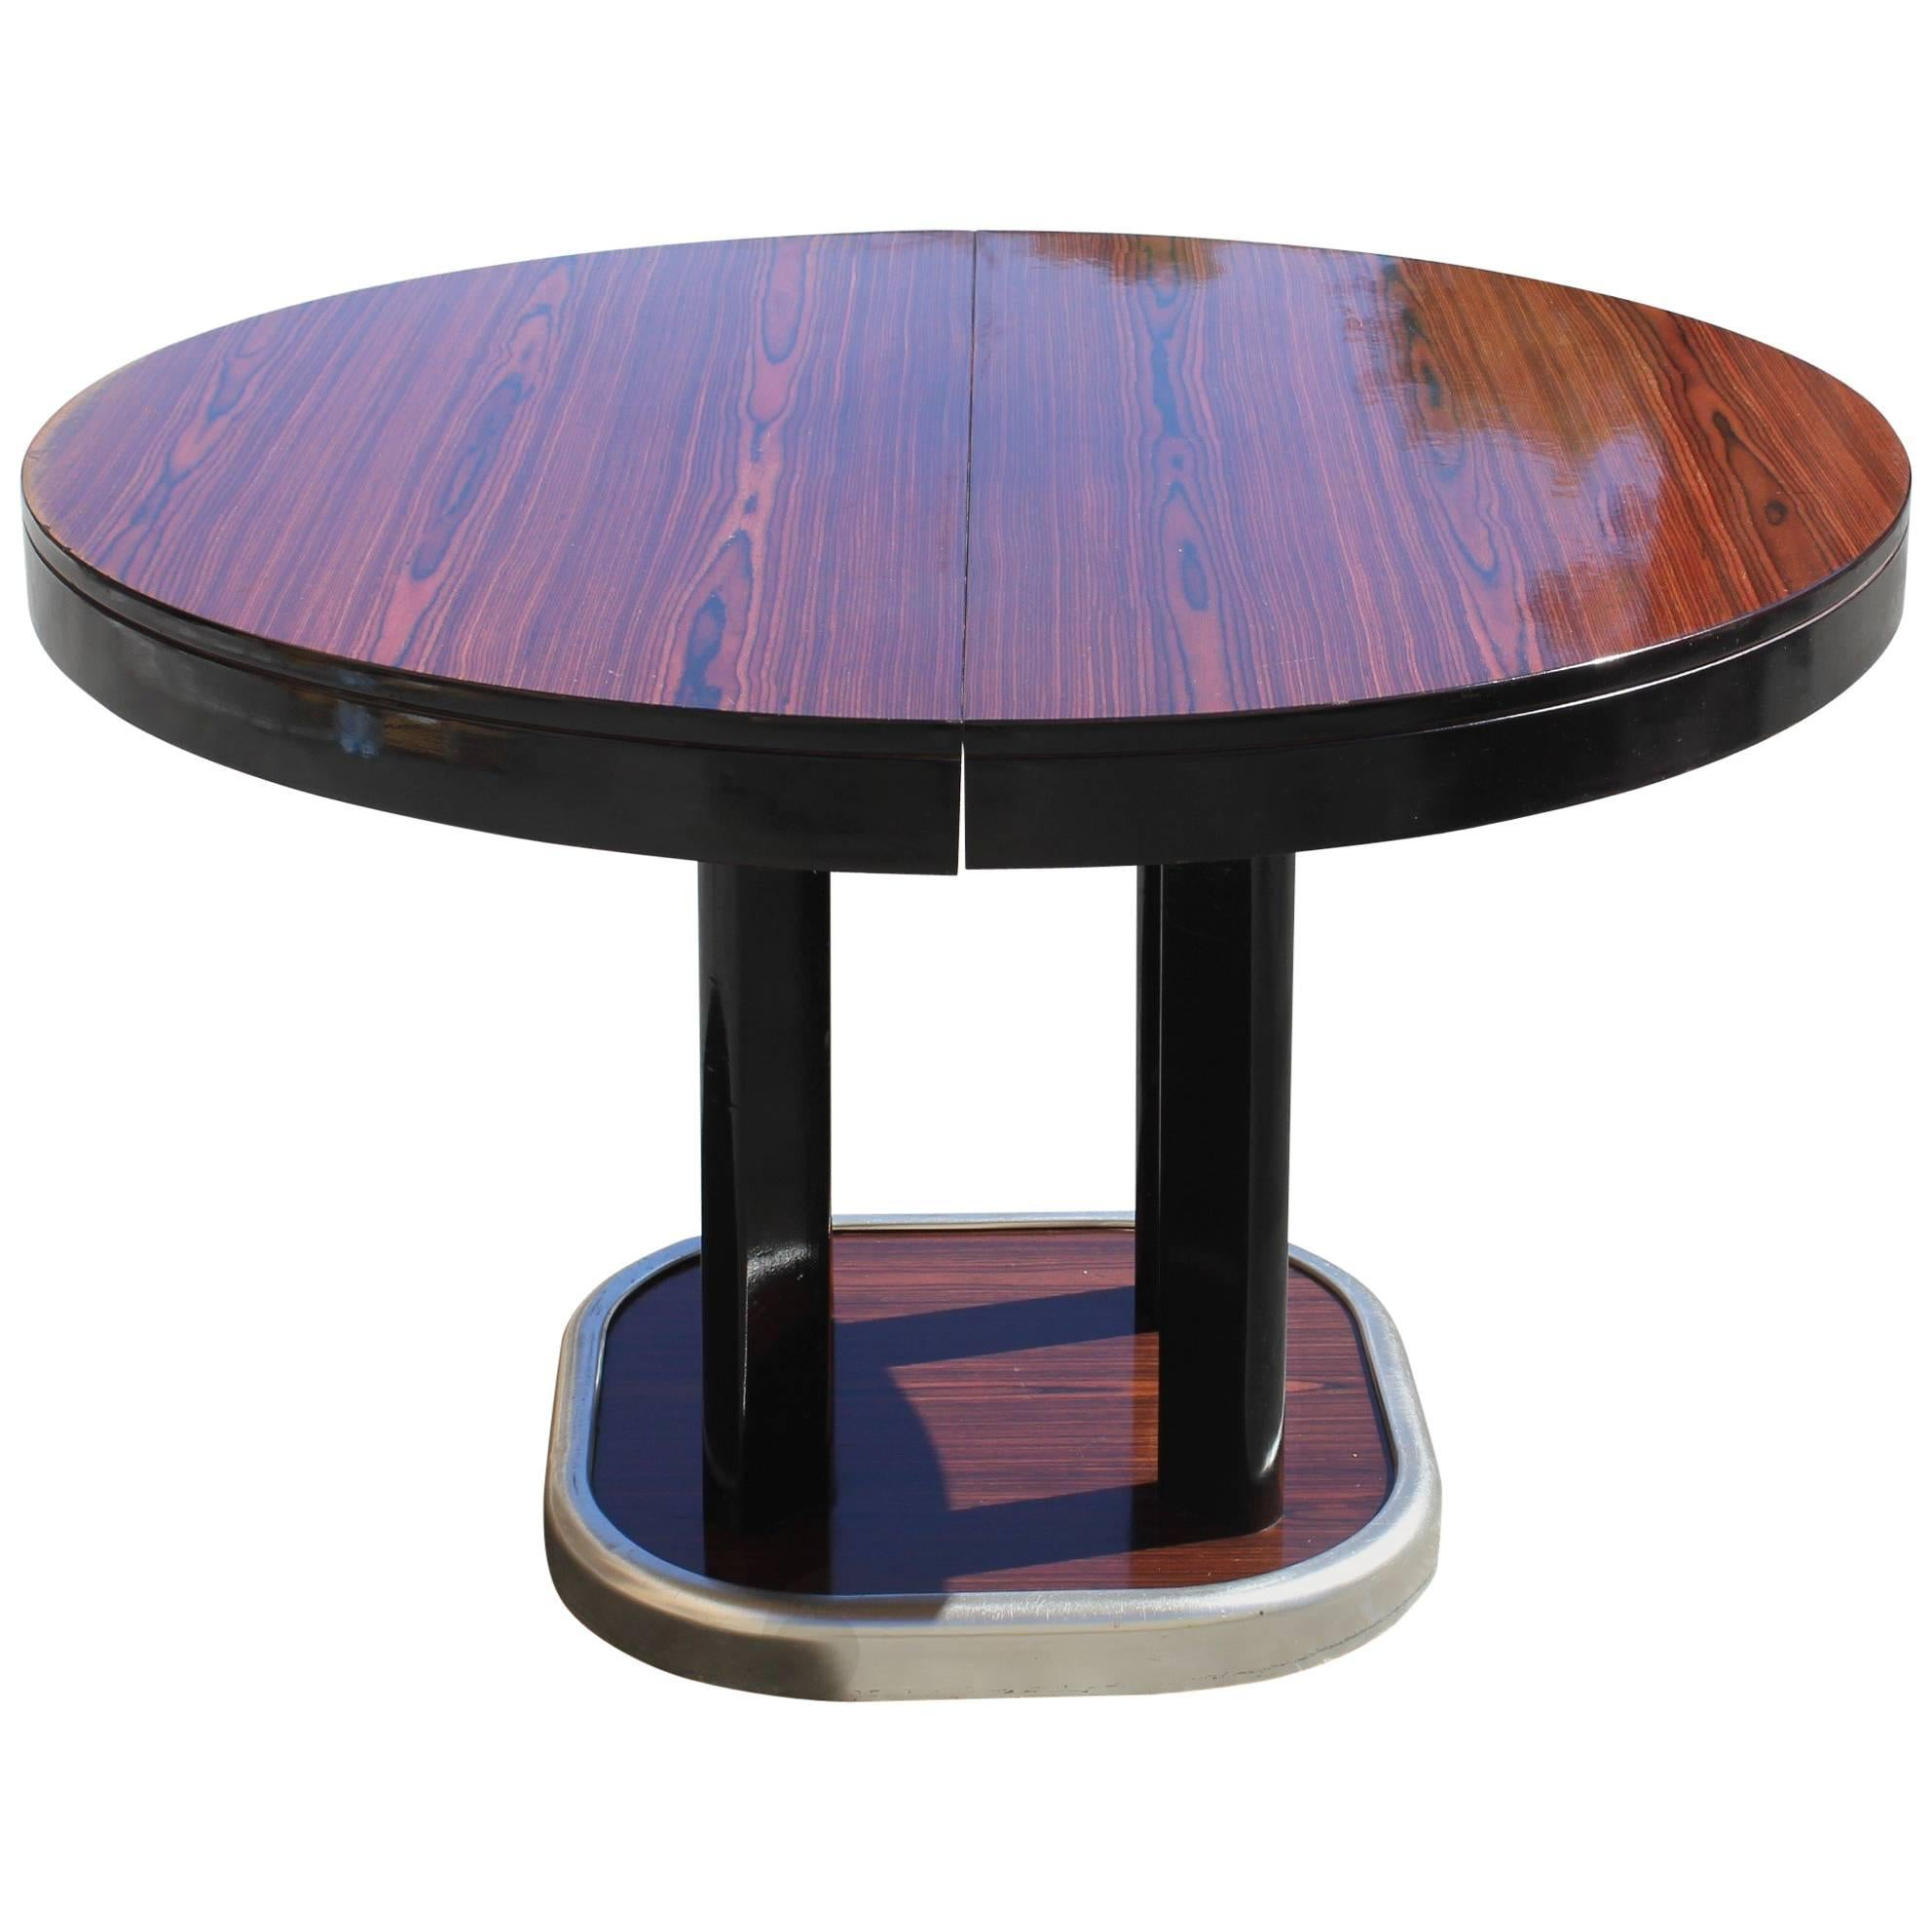 Round Dining Table With Extensions French Art Deco Macassar Ebony Round Dining Table With Built In Extension Leaf